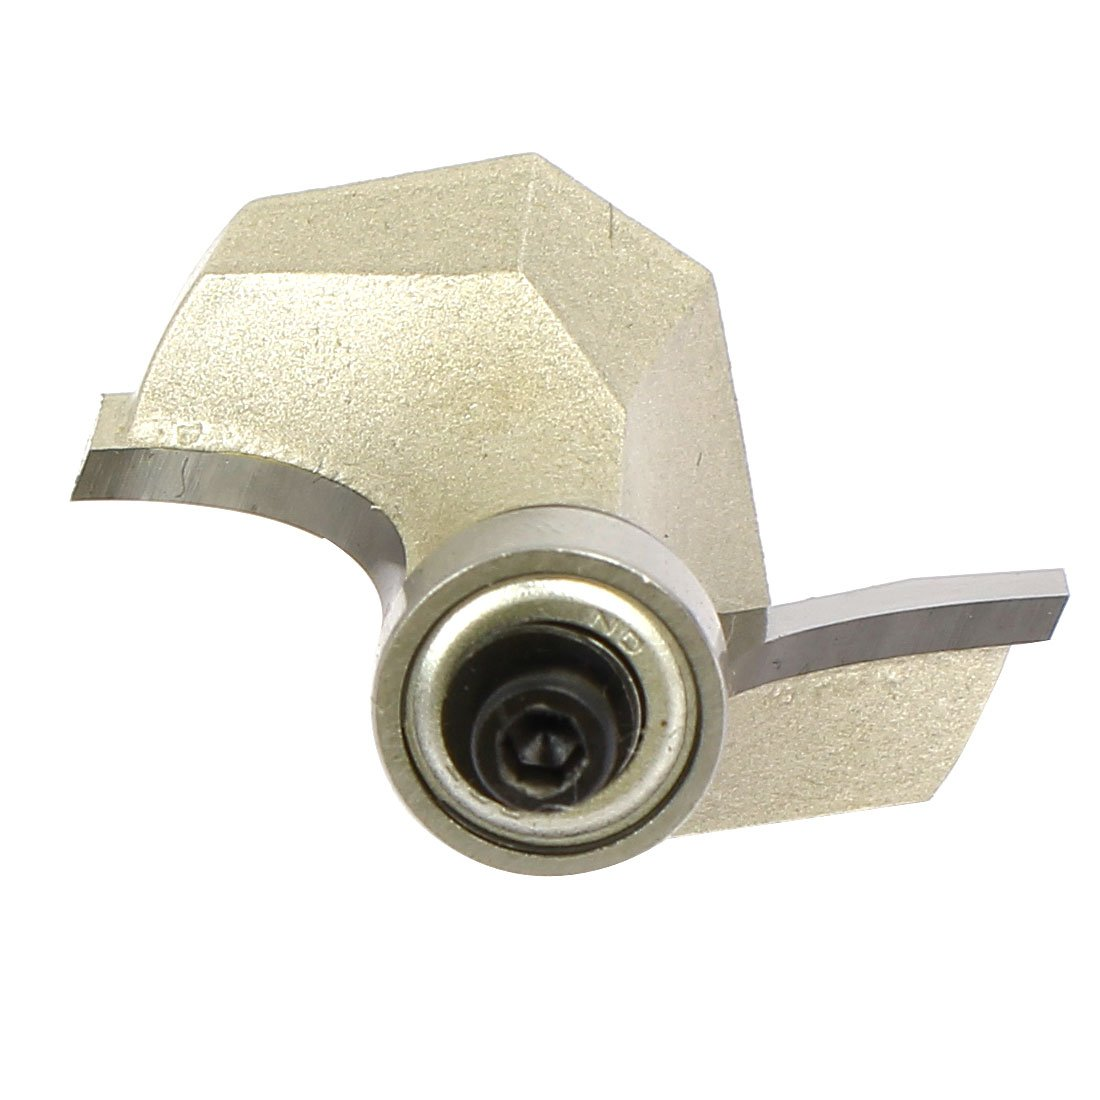 uxcell 1//4-inch Shank 1-inch Cutting Dia 2 Flutes Corner Round Roundover Router Bit